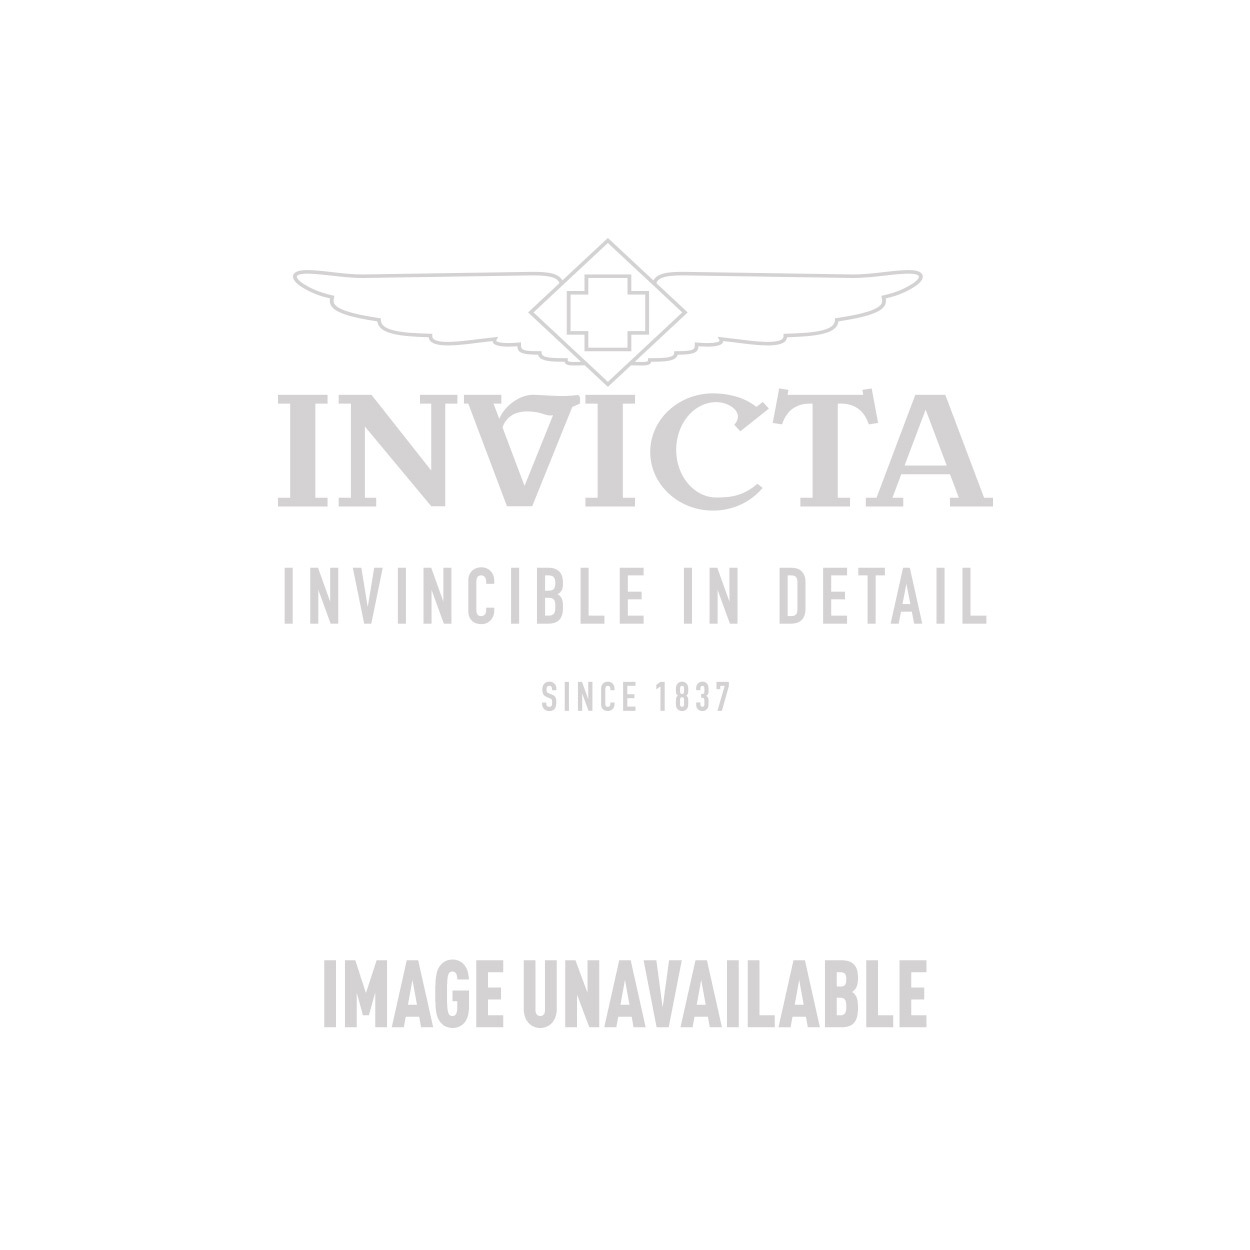 Invicta Reserve Swiss Made Quartz Watch - Rose Gold case with Grey tone Silicone band - Model 18953